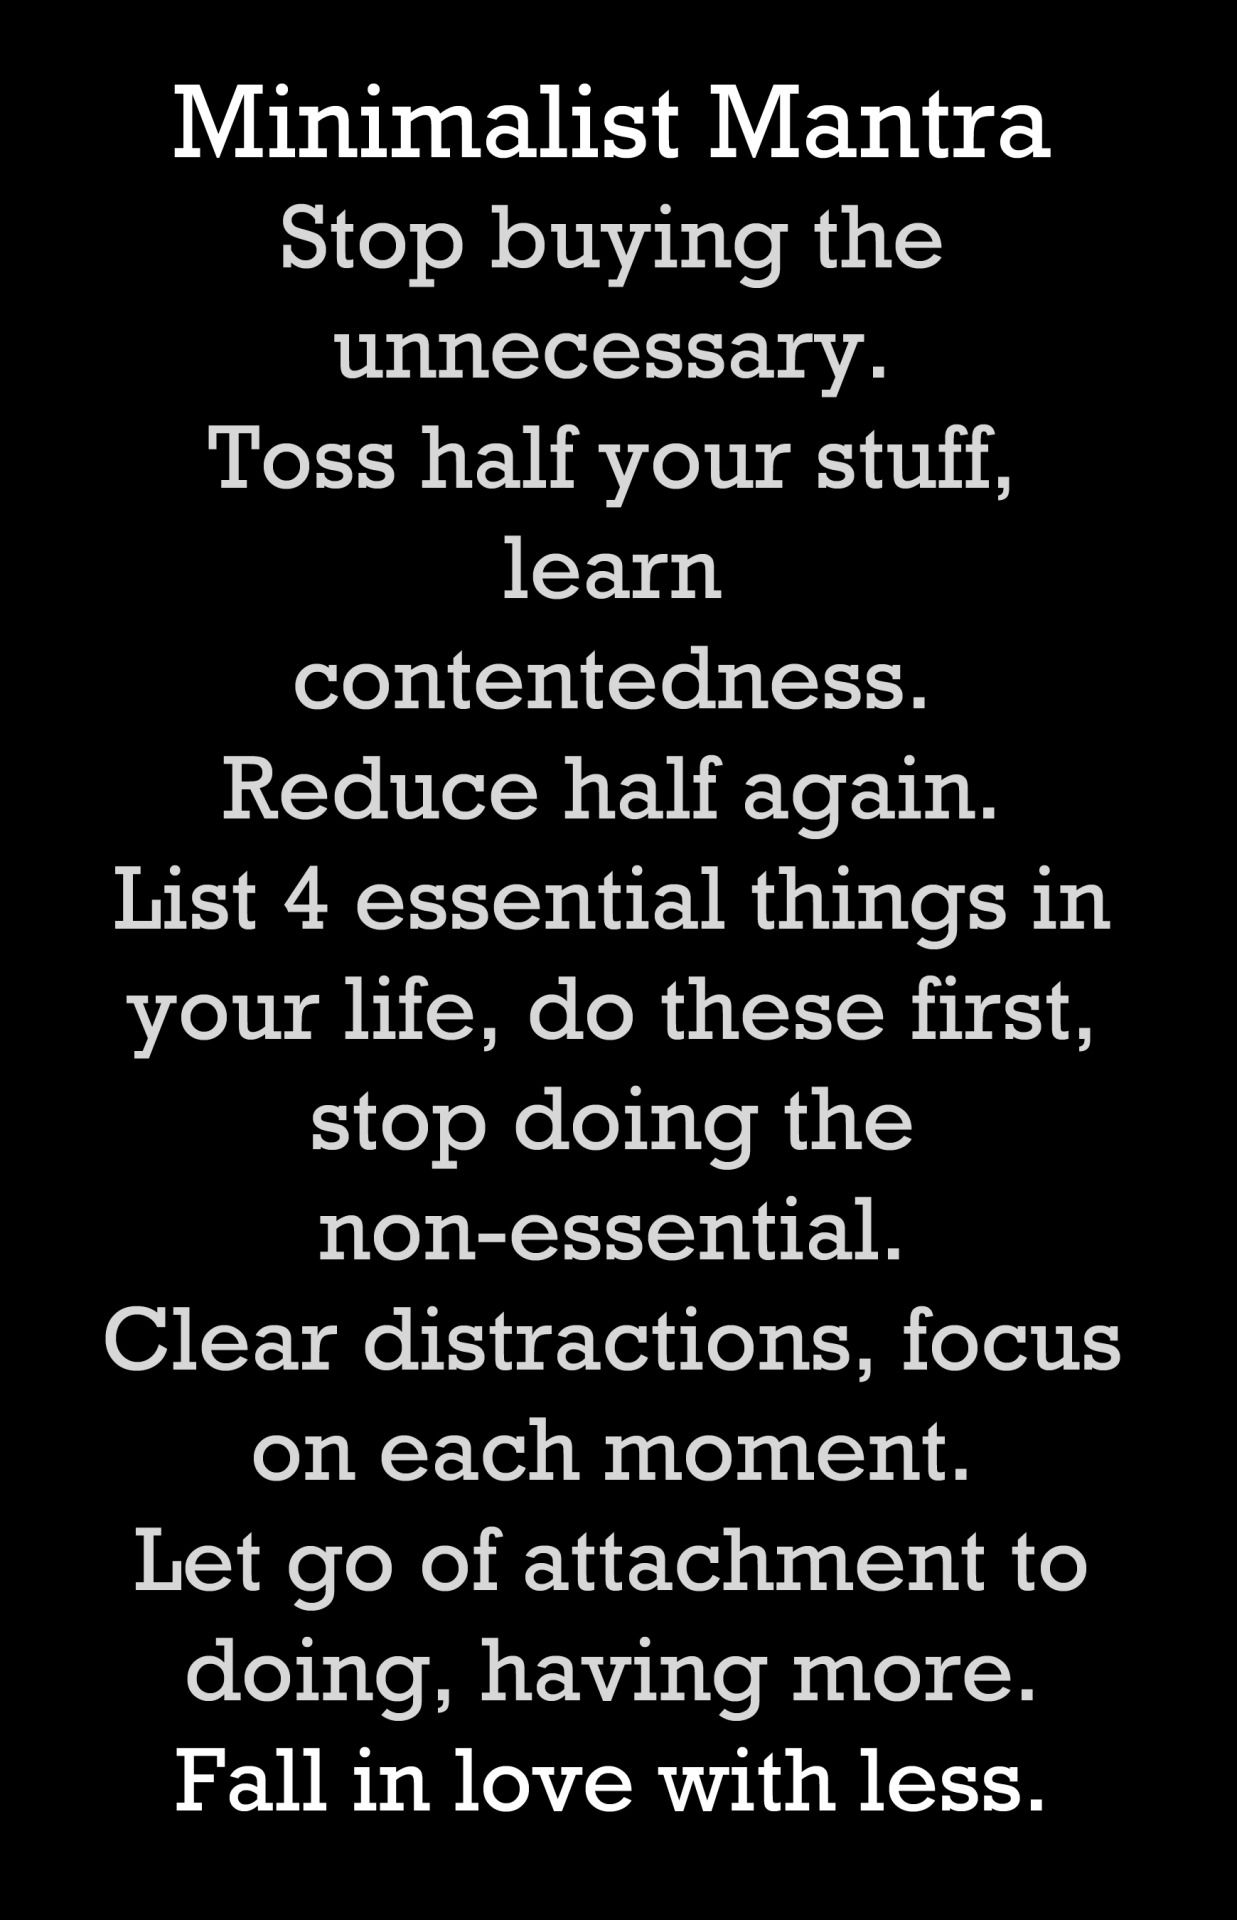 """Another pinner said """"Love Love Love this Mantra! The Minimalist Mantra! I need to put this up where I can see it every """" wish I had the self discipline to do it"""